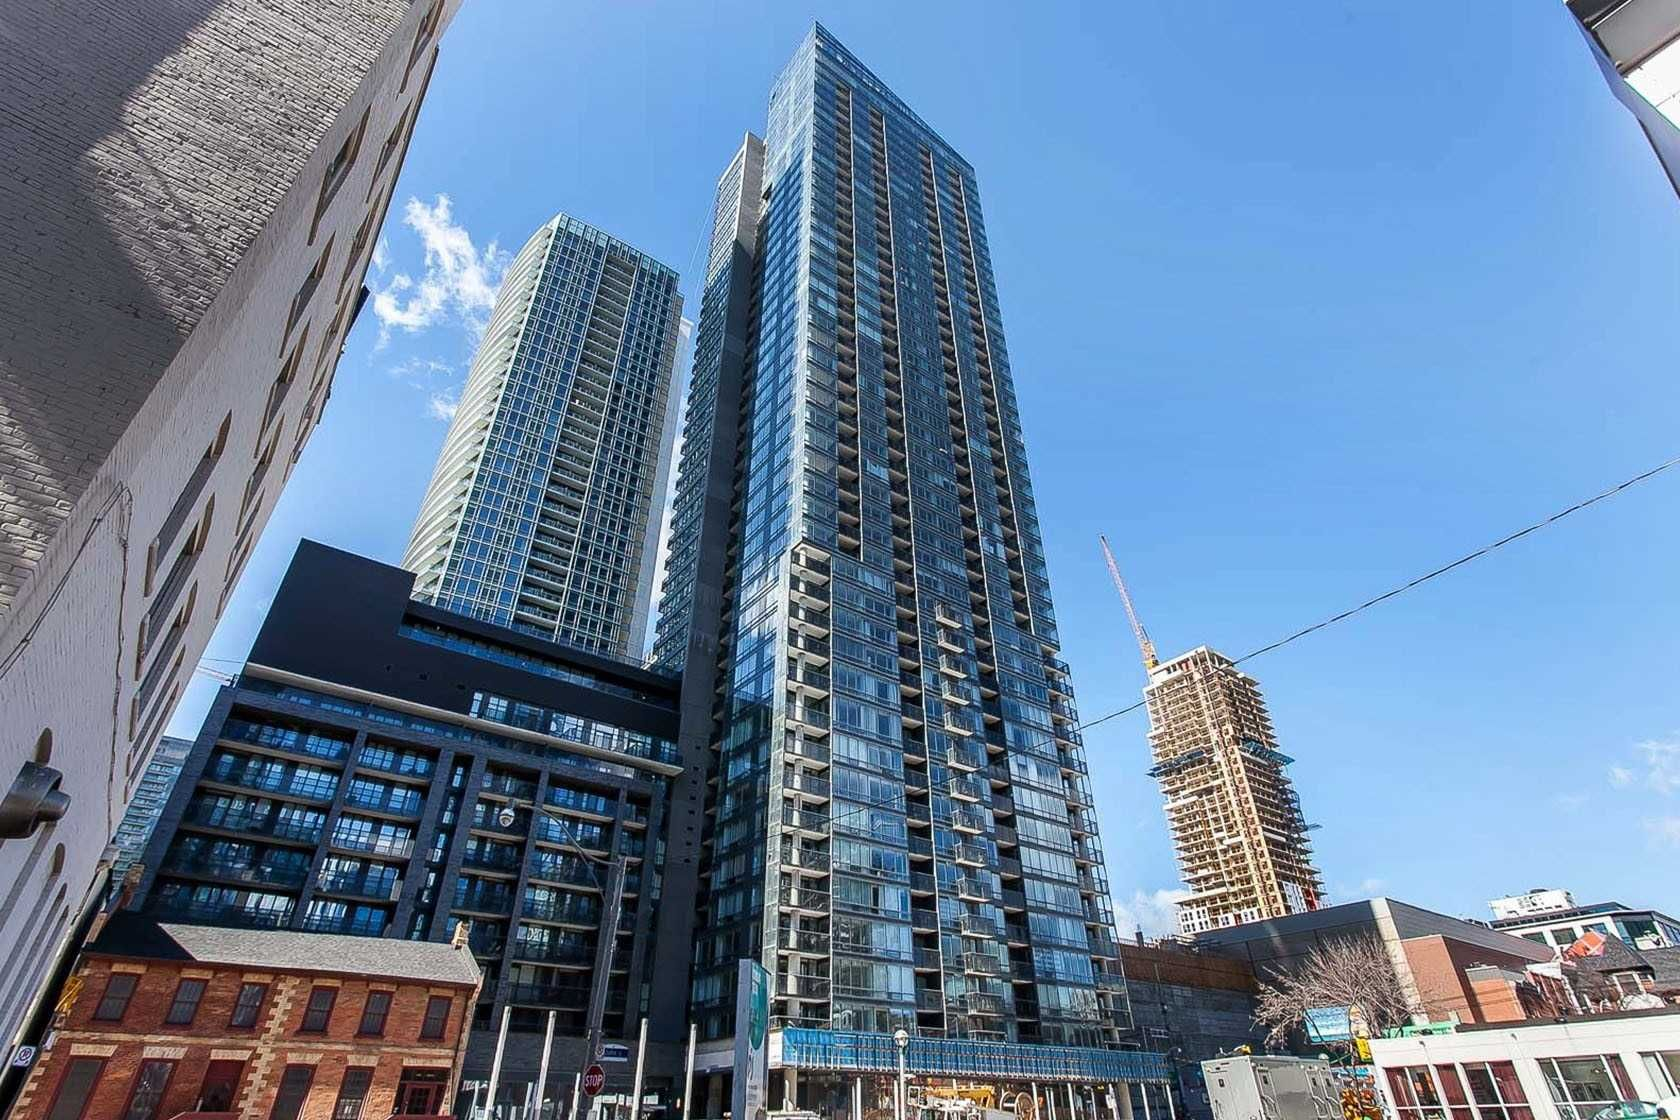 295 Adelaide St W, unit 1015 for rent in Toronto - image #1